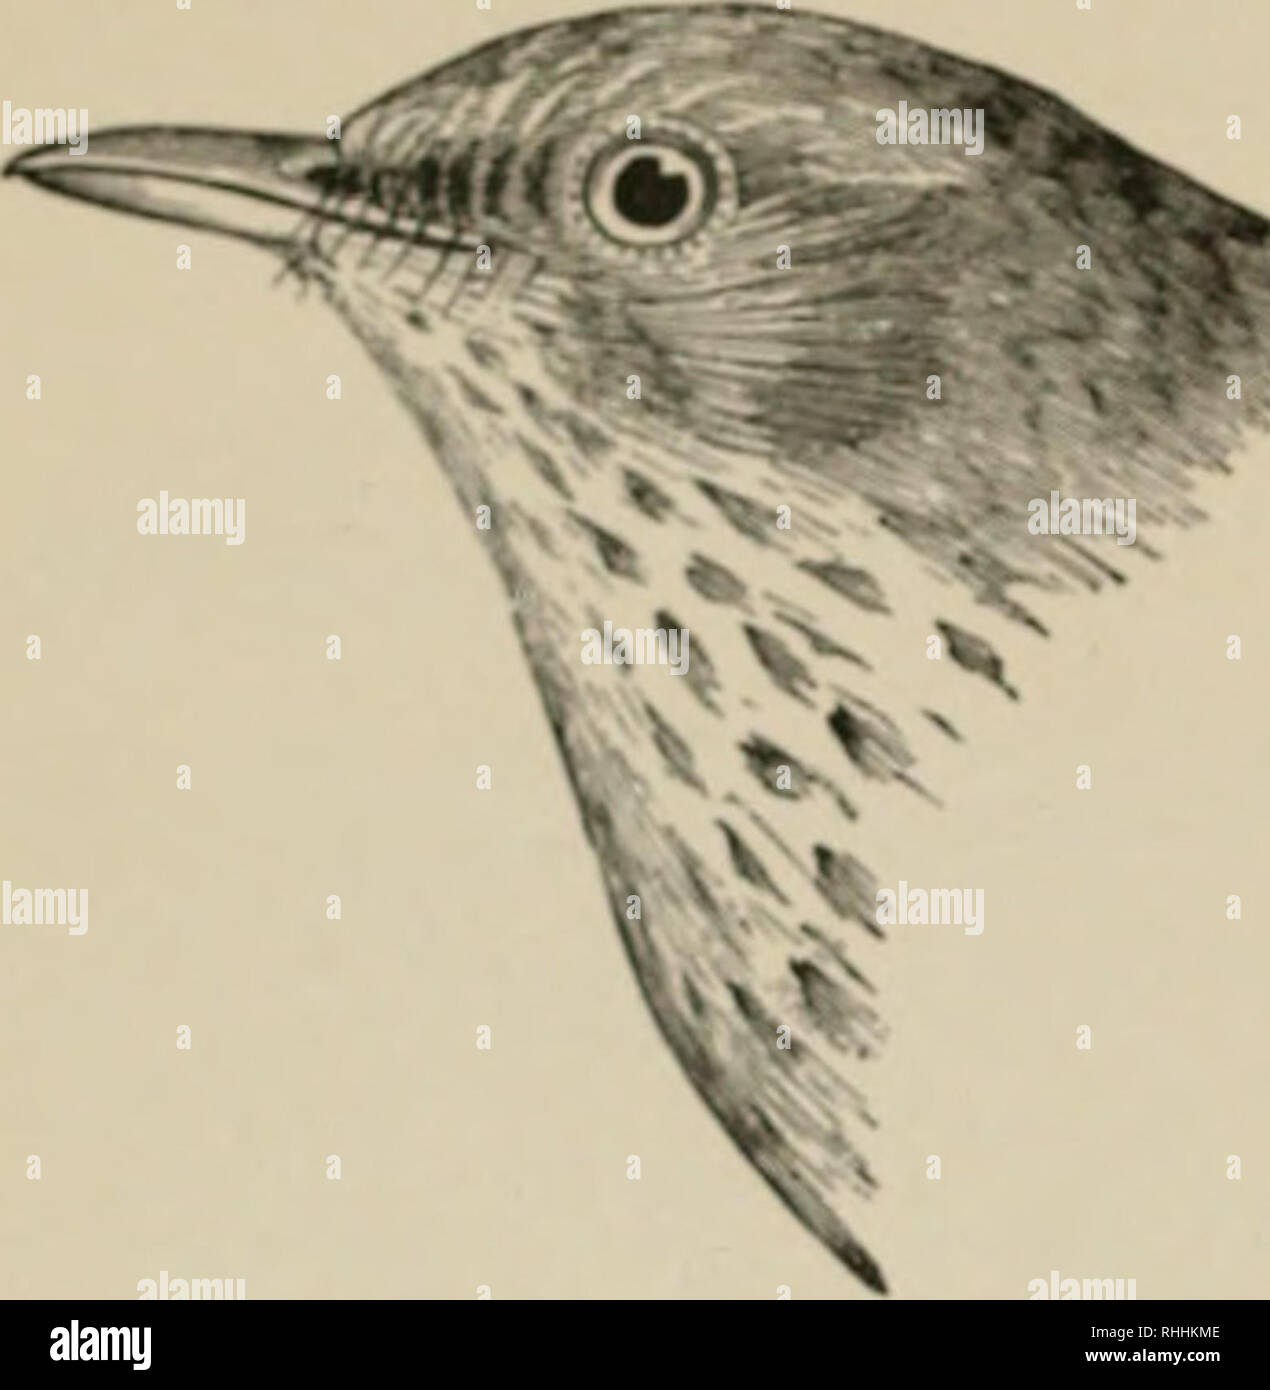 . The birds of eastern North America known to occur east of the nineteenth meridian ... Birds. 322 KF.Y TO THE BIRDS OF EASTERN NORTH AMERICA.. I pper plumage, brownish olive; ends of upper tail c-(»vcit^! ami tail, rufous hrowu, much more rufous than the back; uo wliitf! on tail; first primaiy, very small and narrow, Hermit Thrush. Turdus aonalaschkce pallasii. See No. 5G5.. Please note that these images are extracted from scanned page images that may have been digitally enhanced for readability - coloration and appearance of these illustrations may not perfectly resemble the original work..  Stock Photo